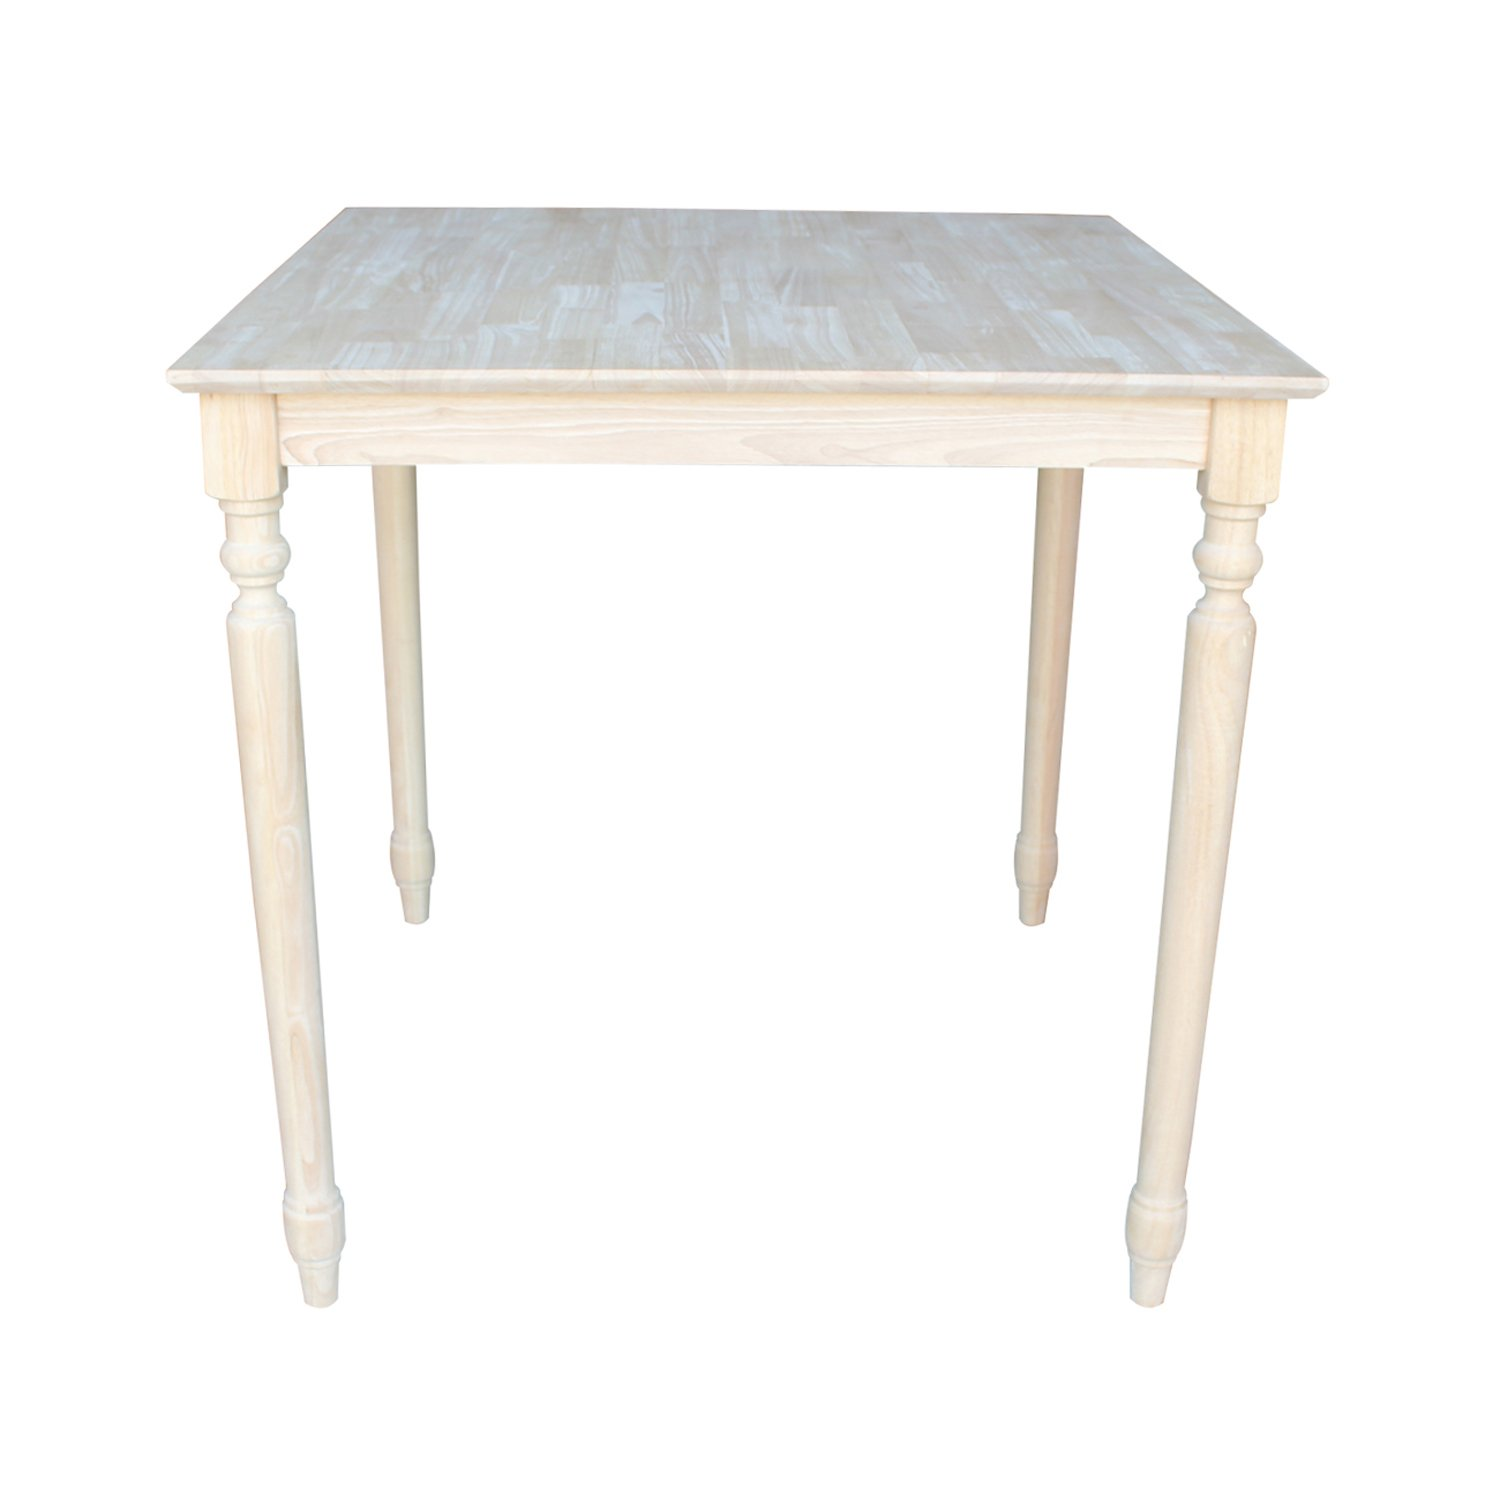 International Concepts Solid Wood Top Table with Turned Legs, 36-Inch